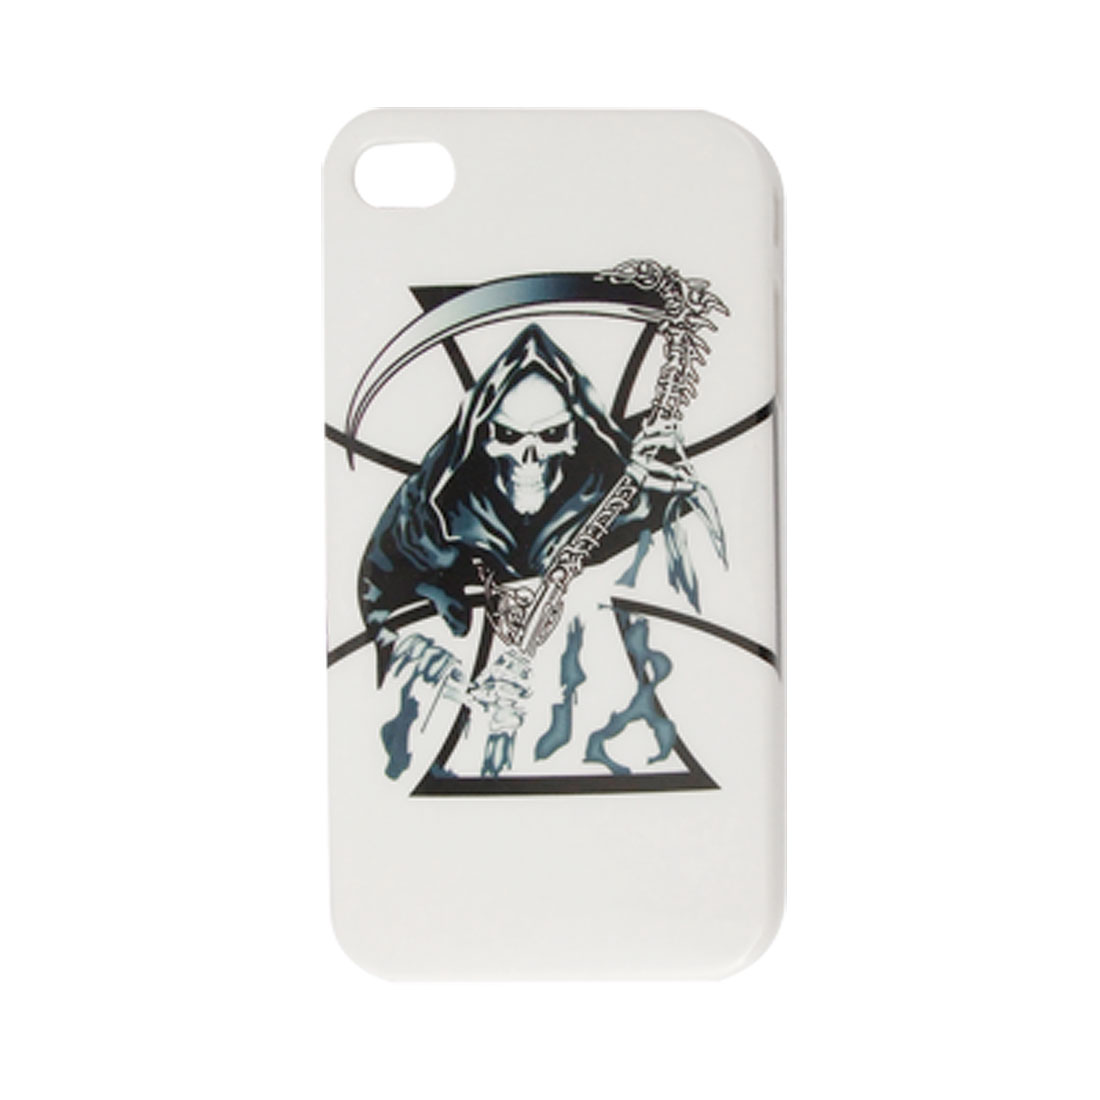 IMD Skull Print Hard Plastic White Black Back Case for iPhone 4 4G